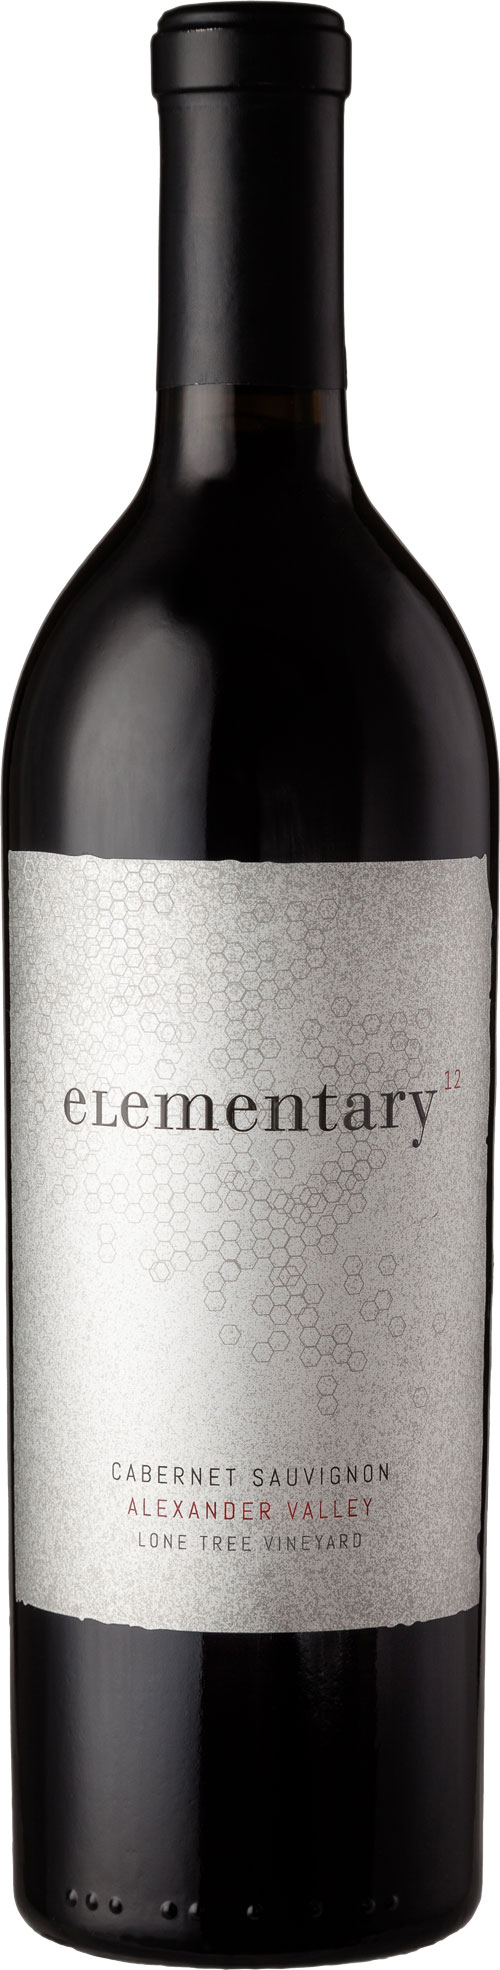 2015 Elementary by Nick Goldschmidt Alexander Valley Cabernet Sauvignon Yeoman Vineyard